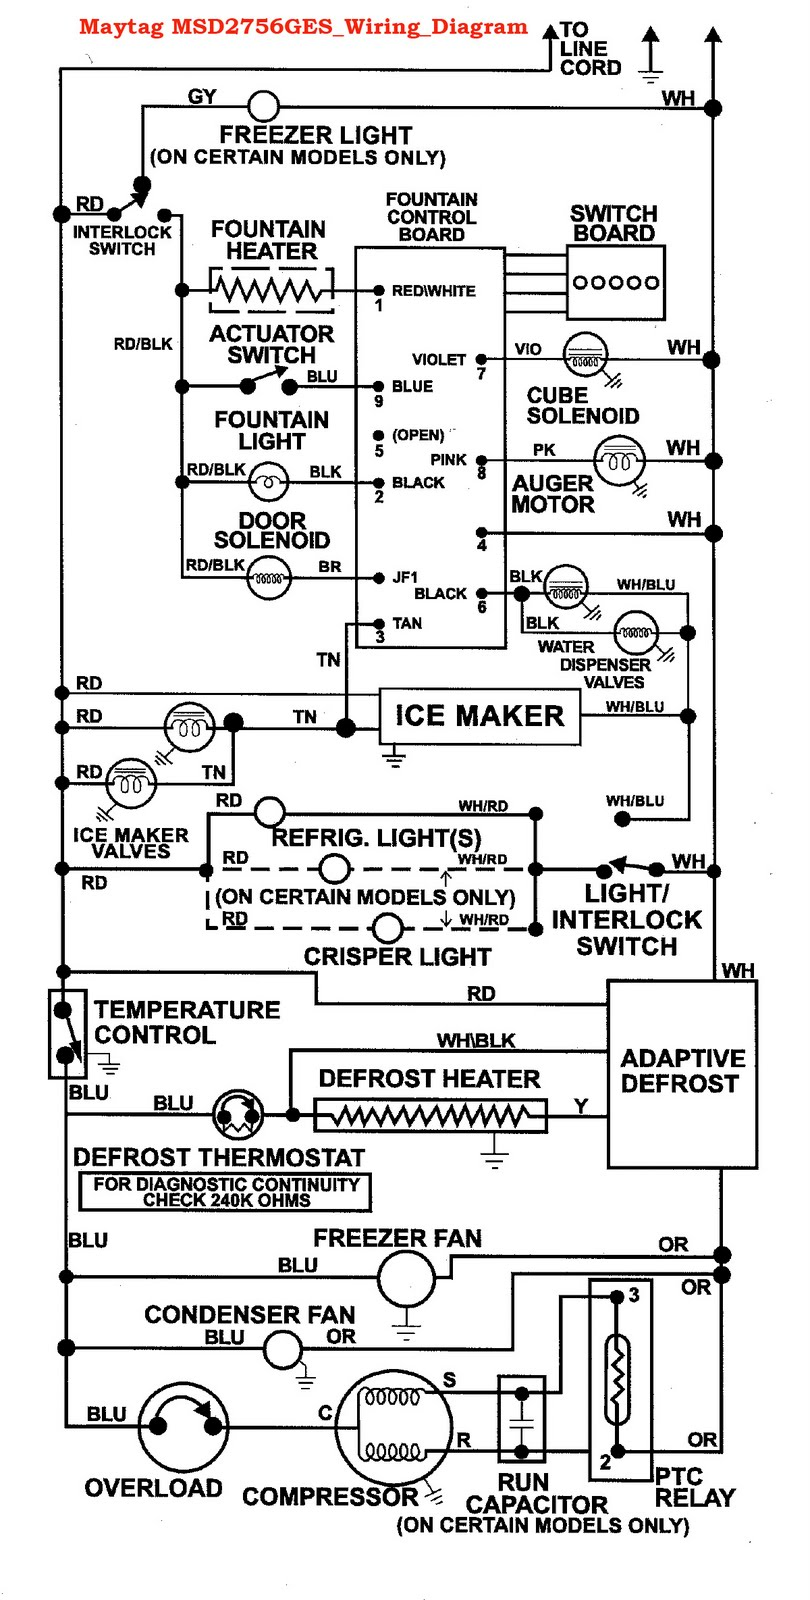 medium resolution of maytag refrigerator wiring diagram simple wiring diagram rh 26 mara cujas de dryer wiring maytag dryer